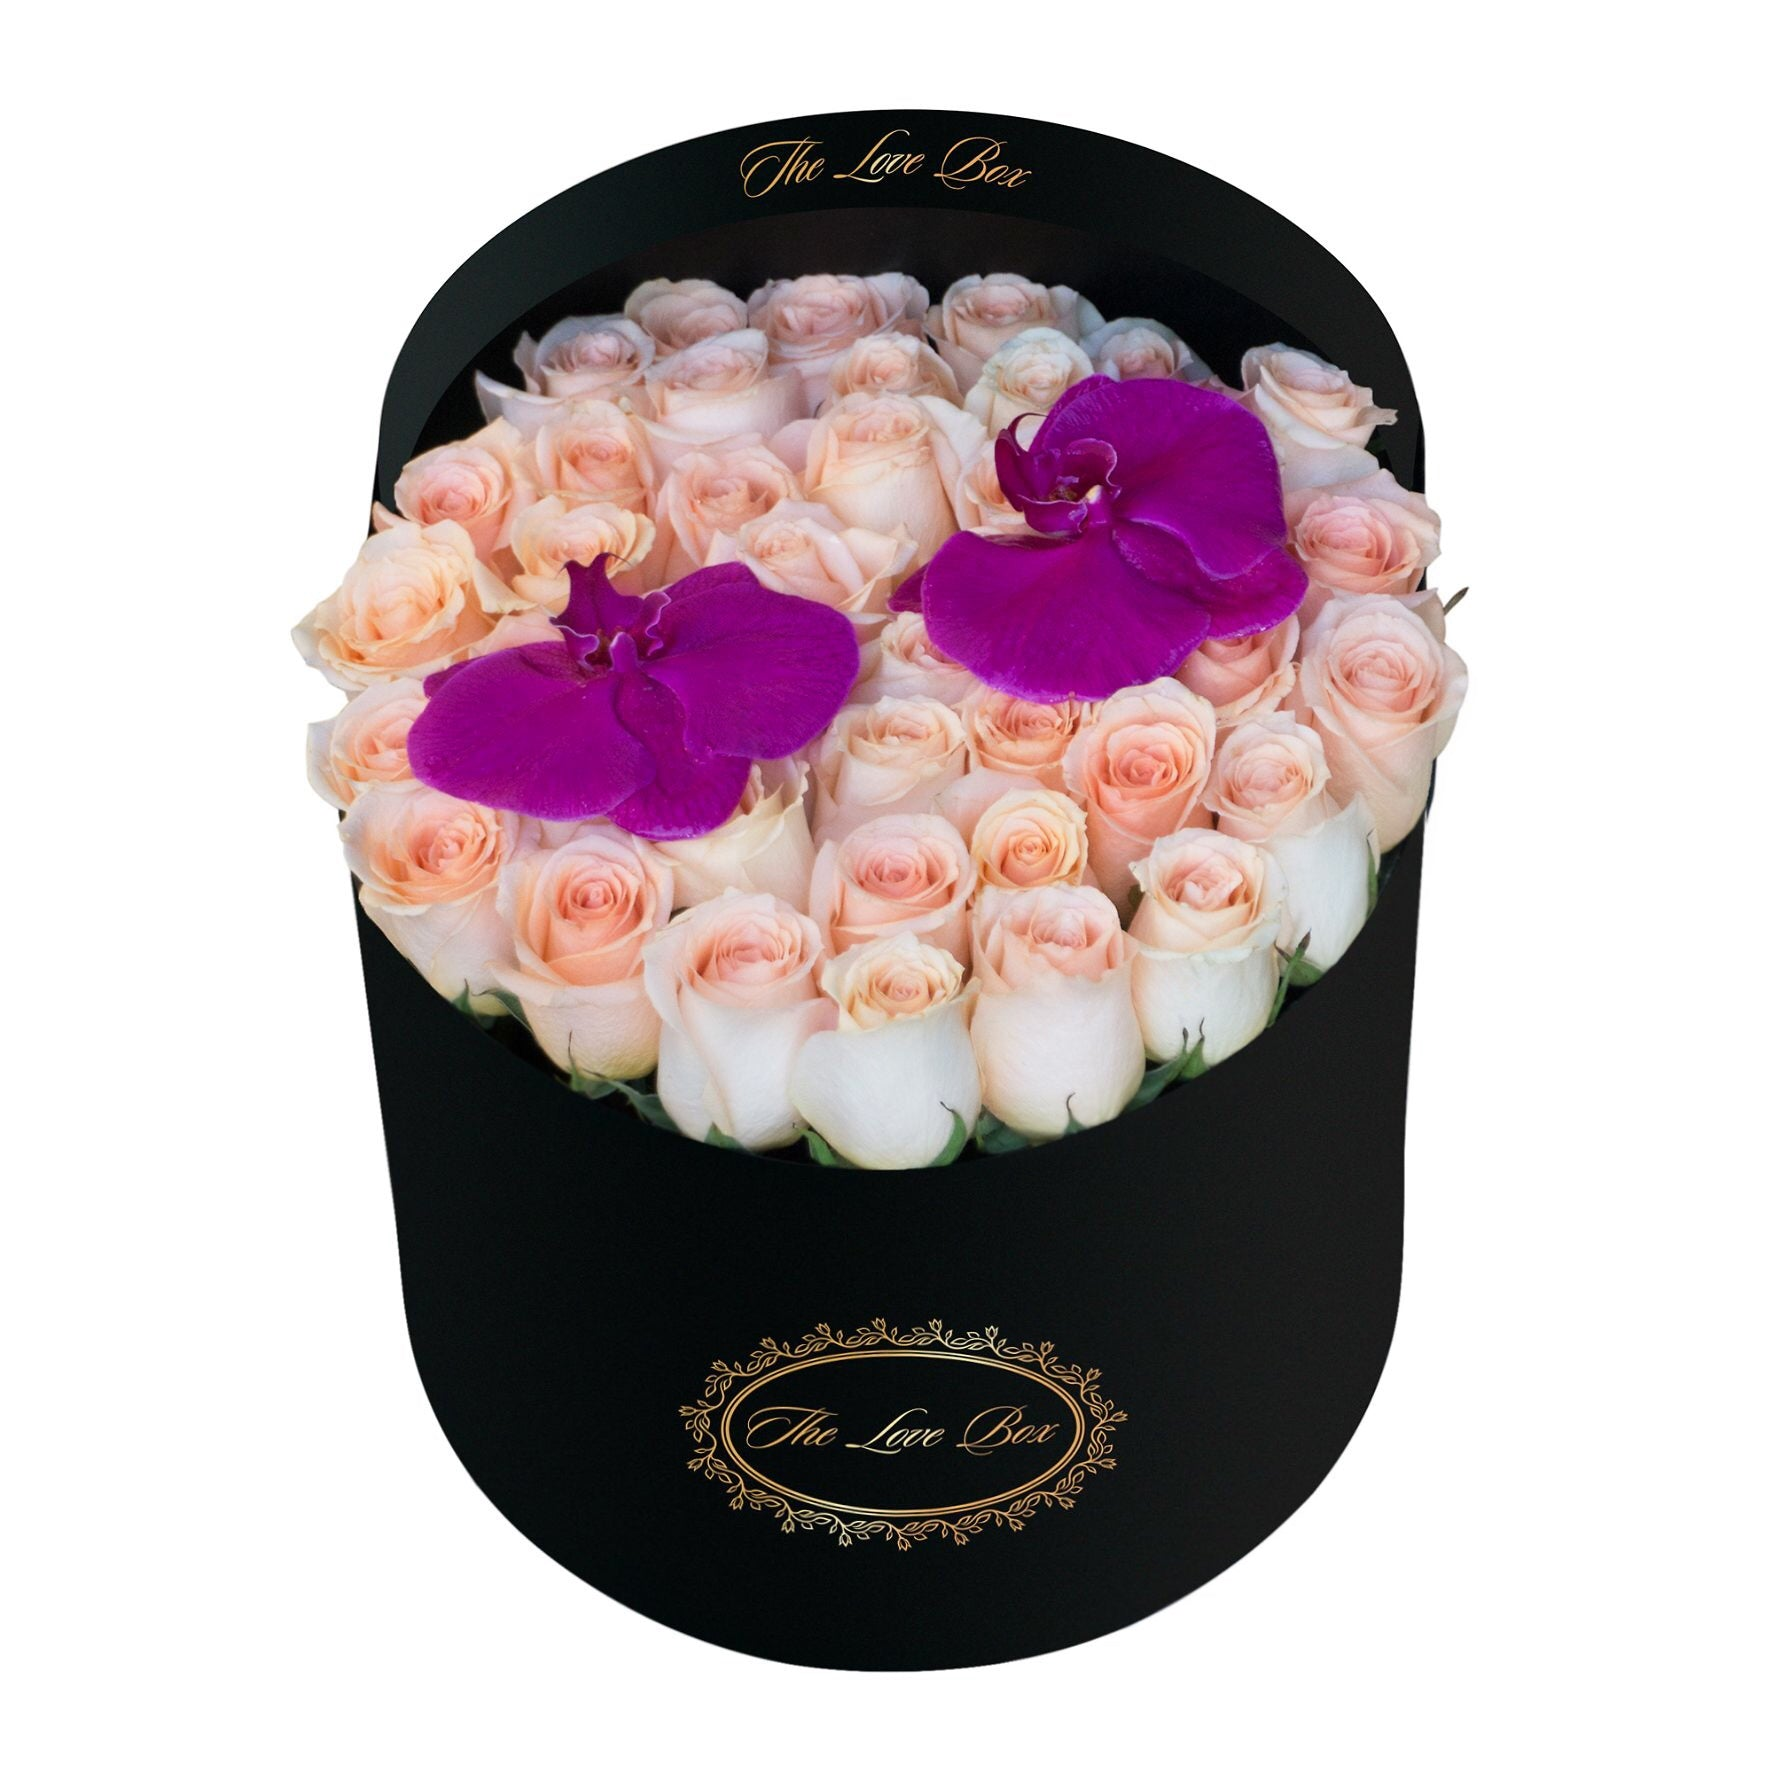 Light Orange Roses with Orchid Flowers in Large Black Box - The Love Box Flowers